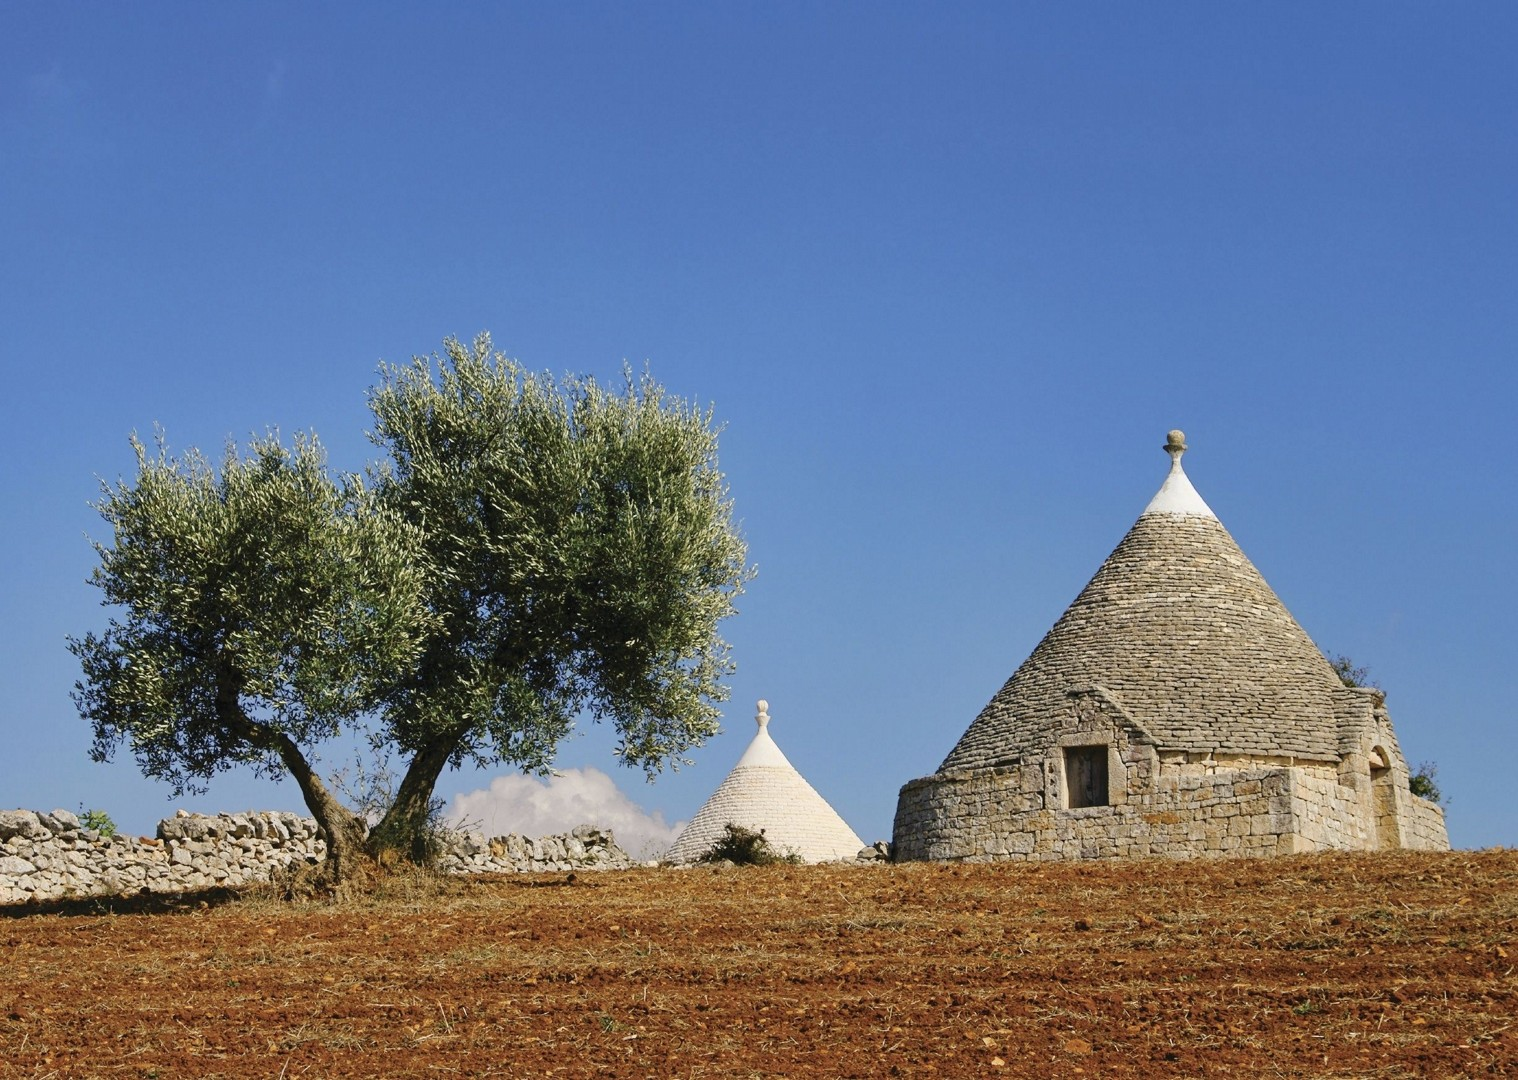 cycling-holiday-italy-puglia-trulli-culture.jpg - Italy - Puglia - Guided Leisure Cycling Holiday - Leisure Cycling